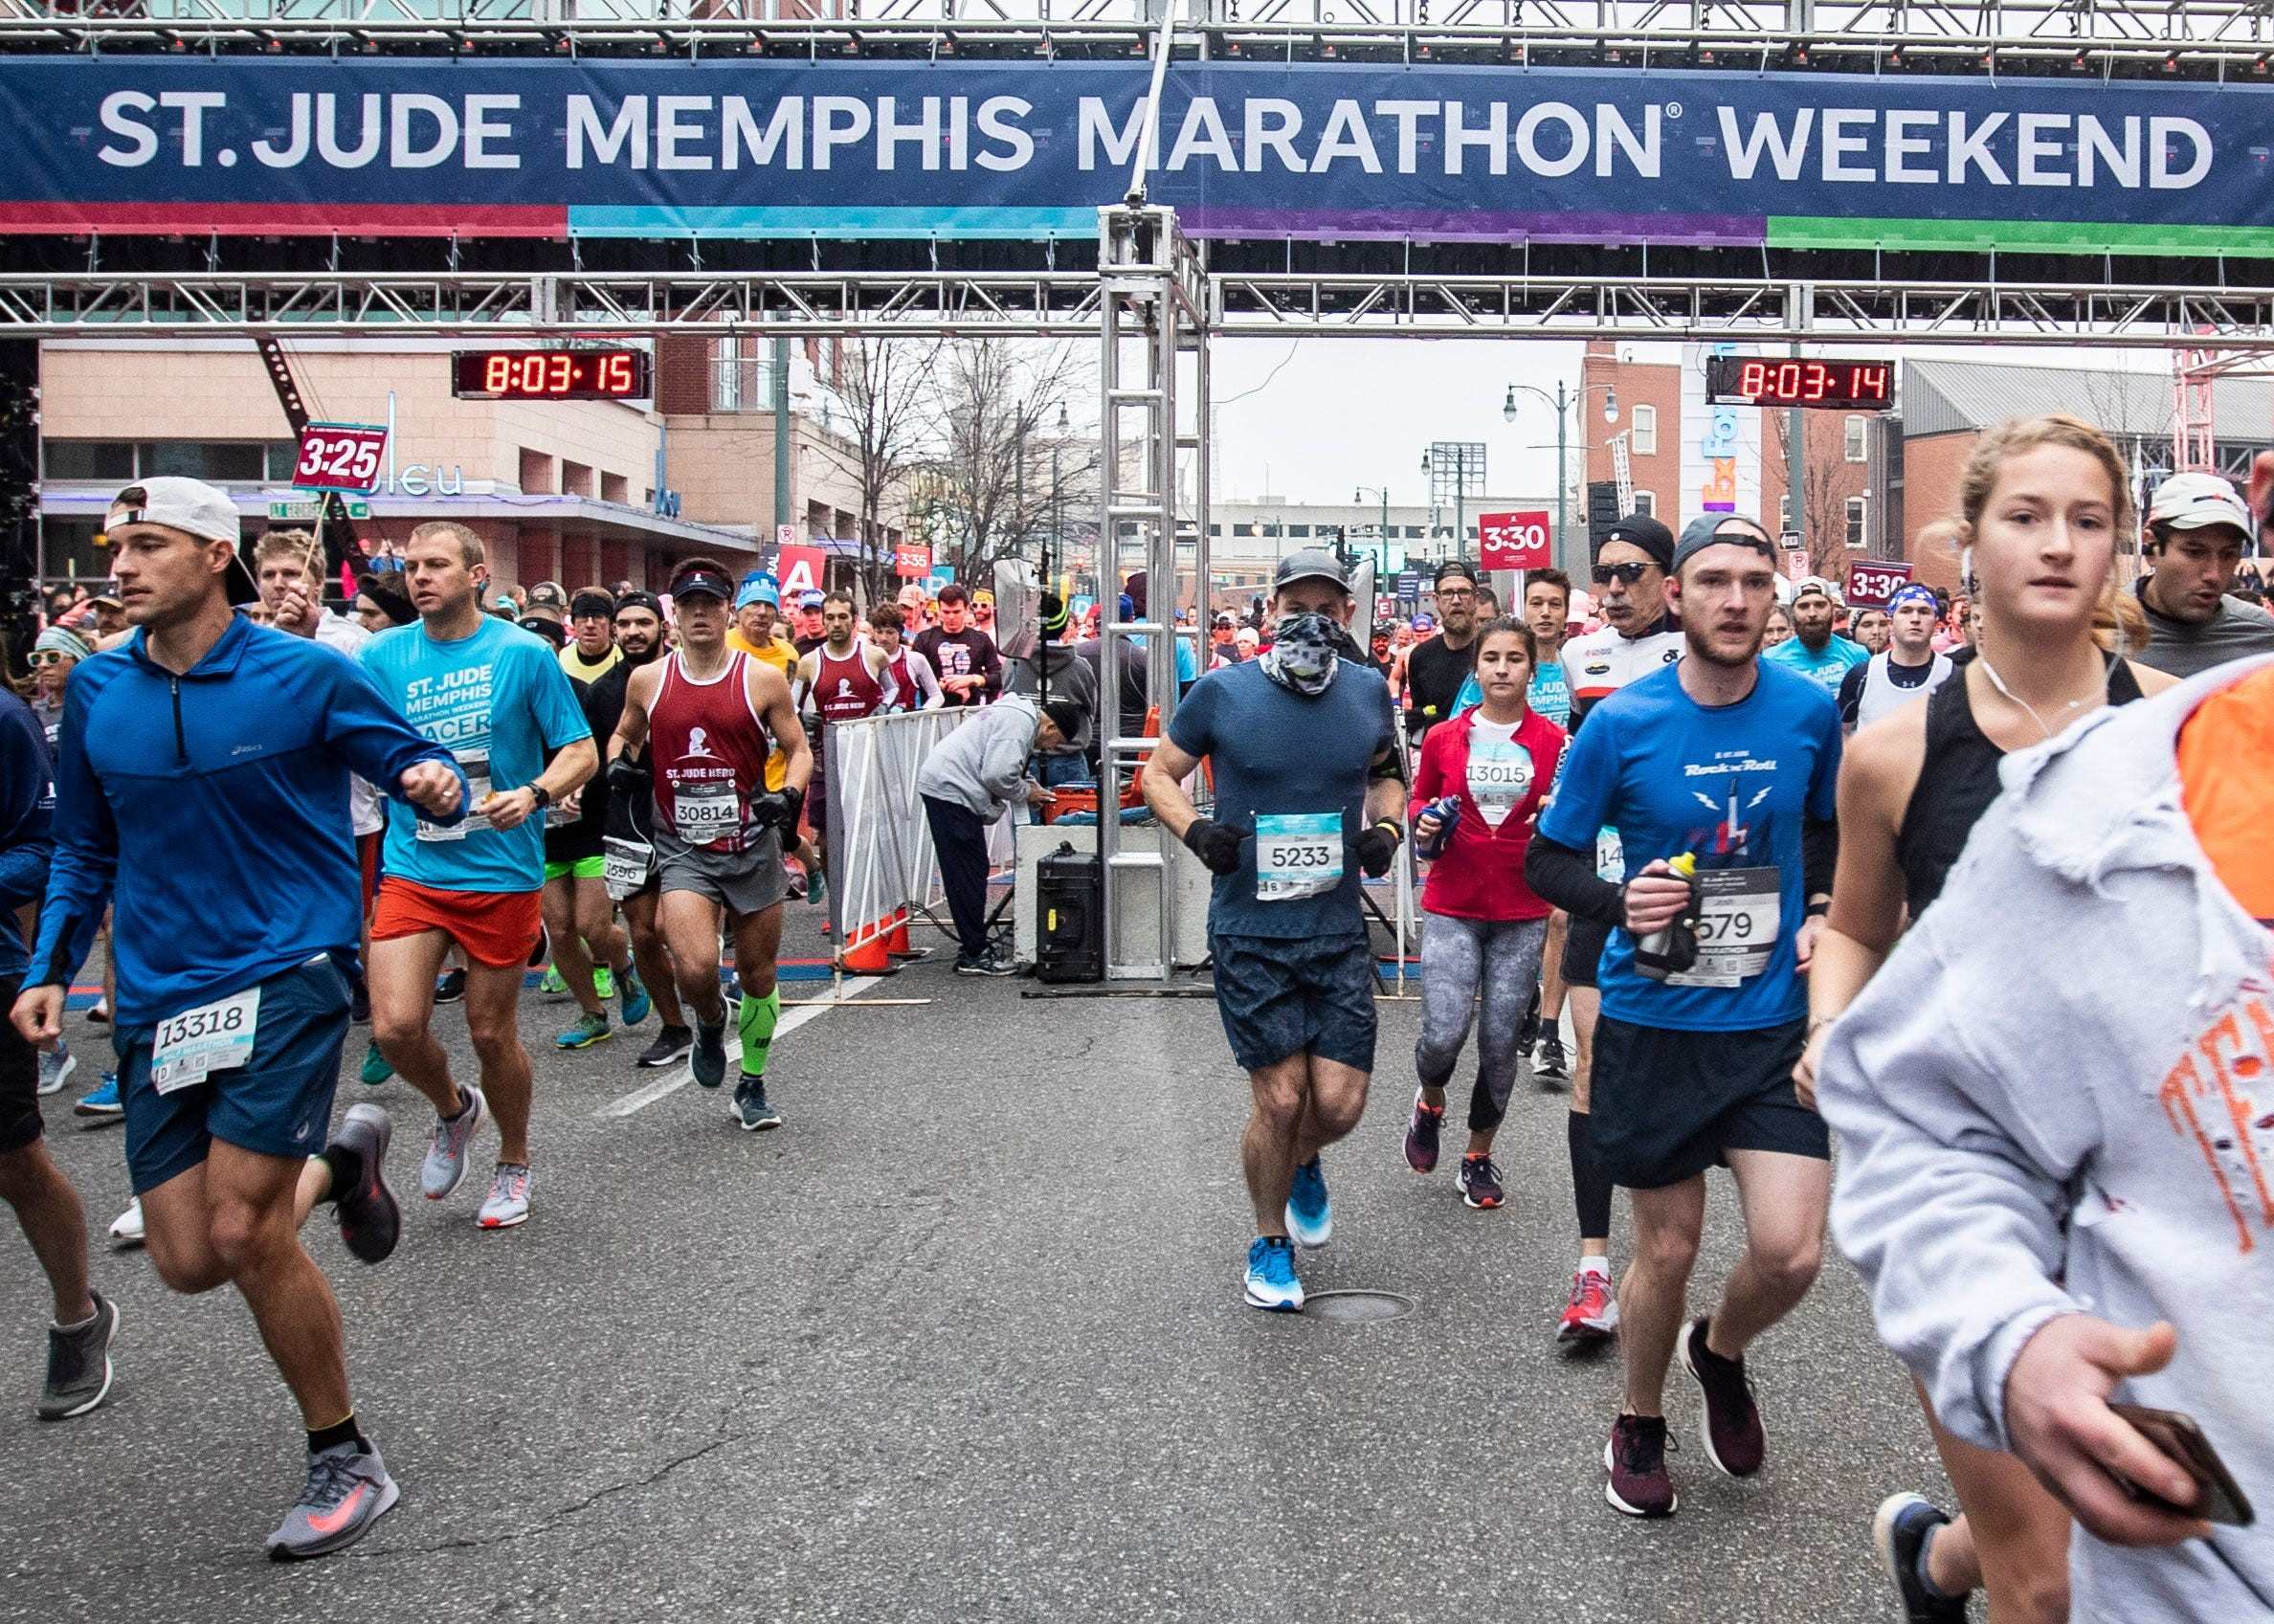 $12 million raised to battle childhood cancer, other life-threatening diseases at St. Jude Memphis Marathon